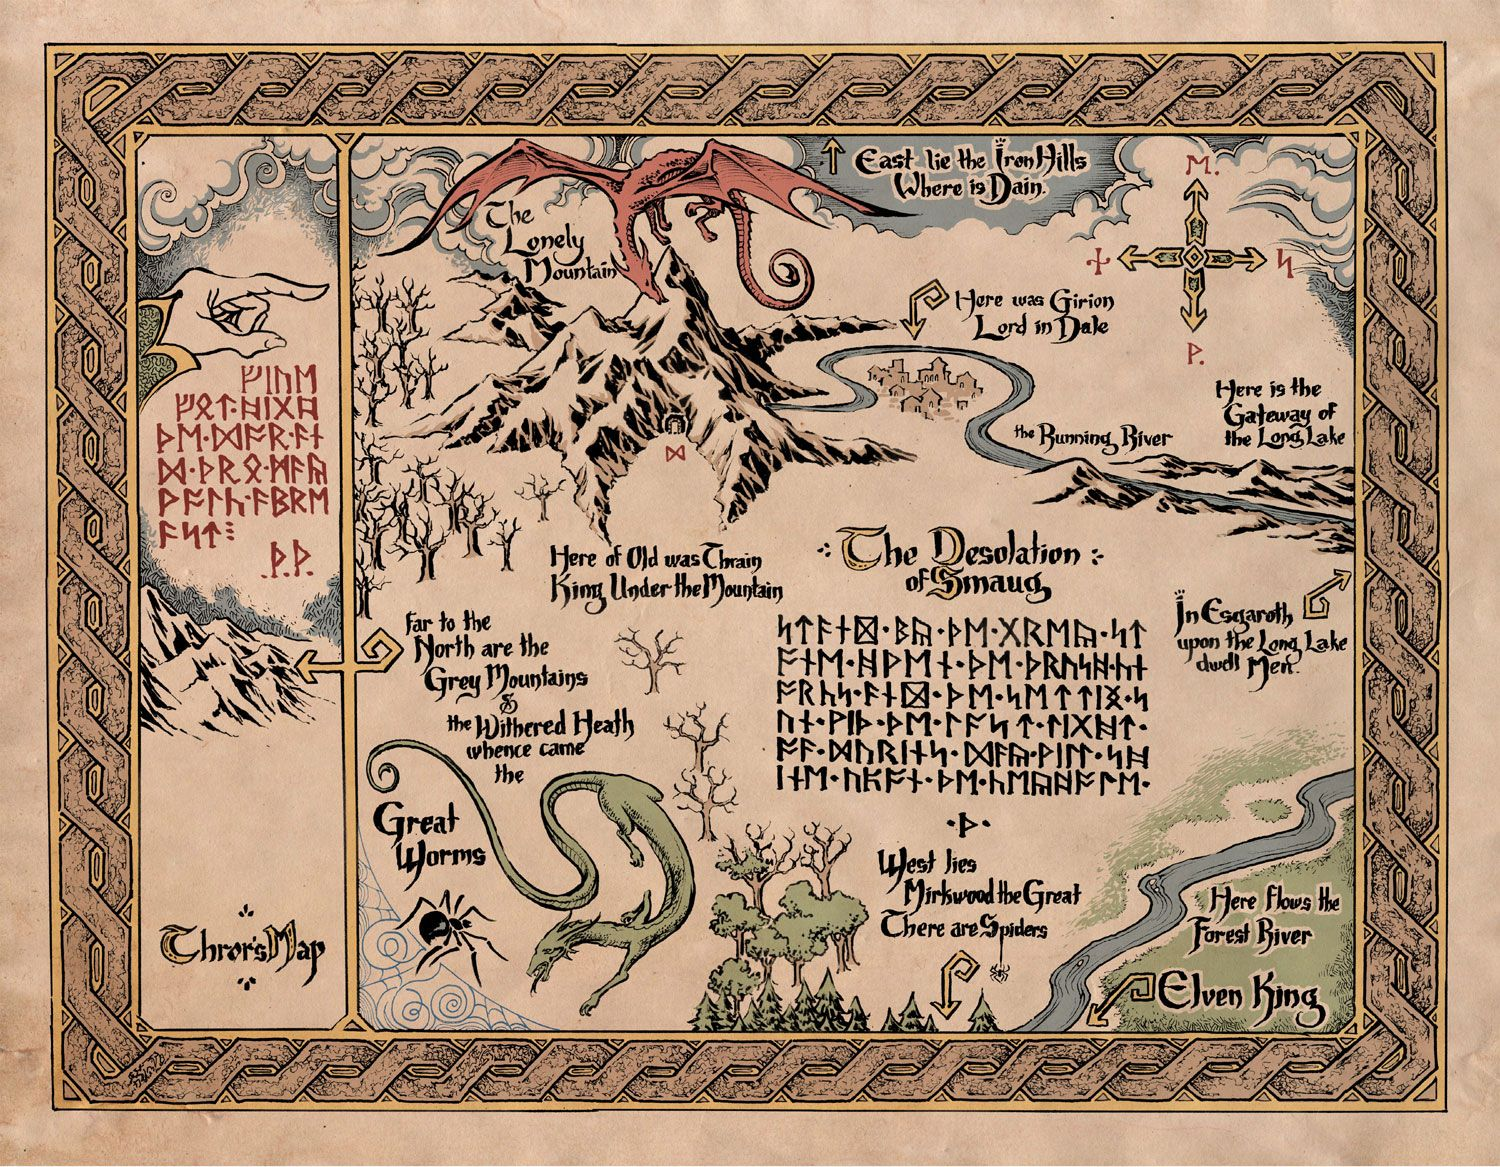 An analysis of the fantasy novel the hobbit by jrr tolkien